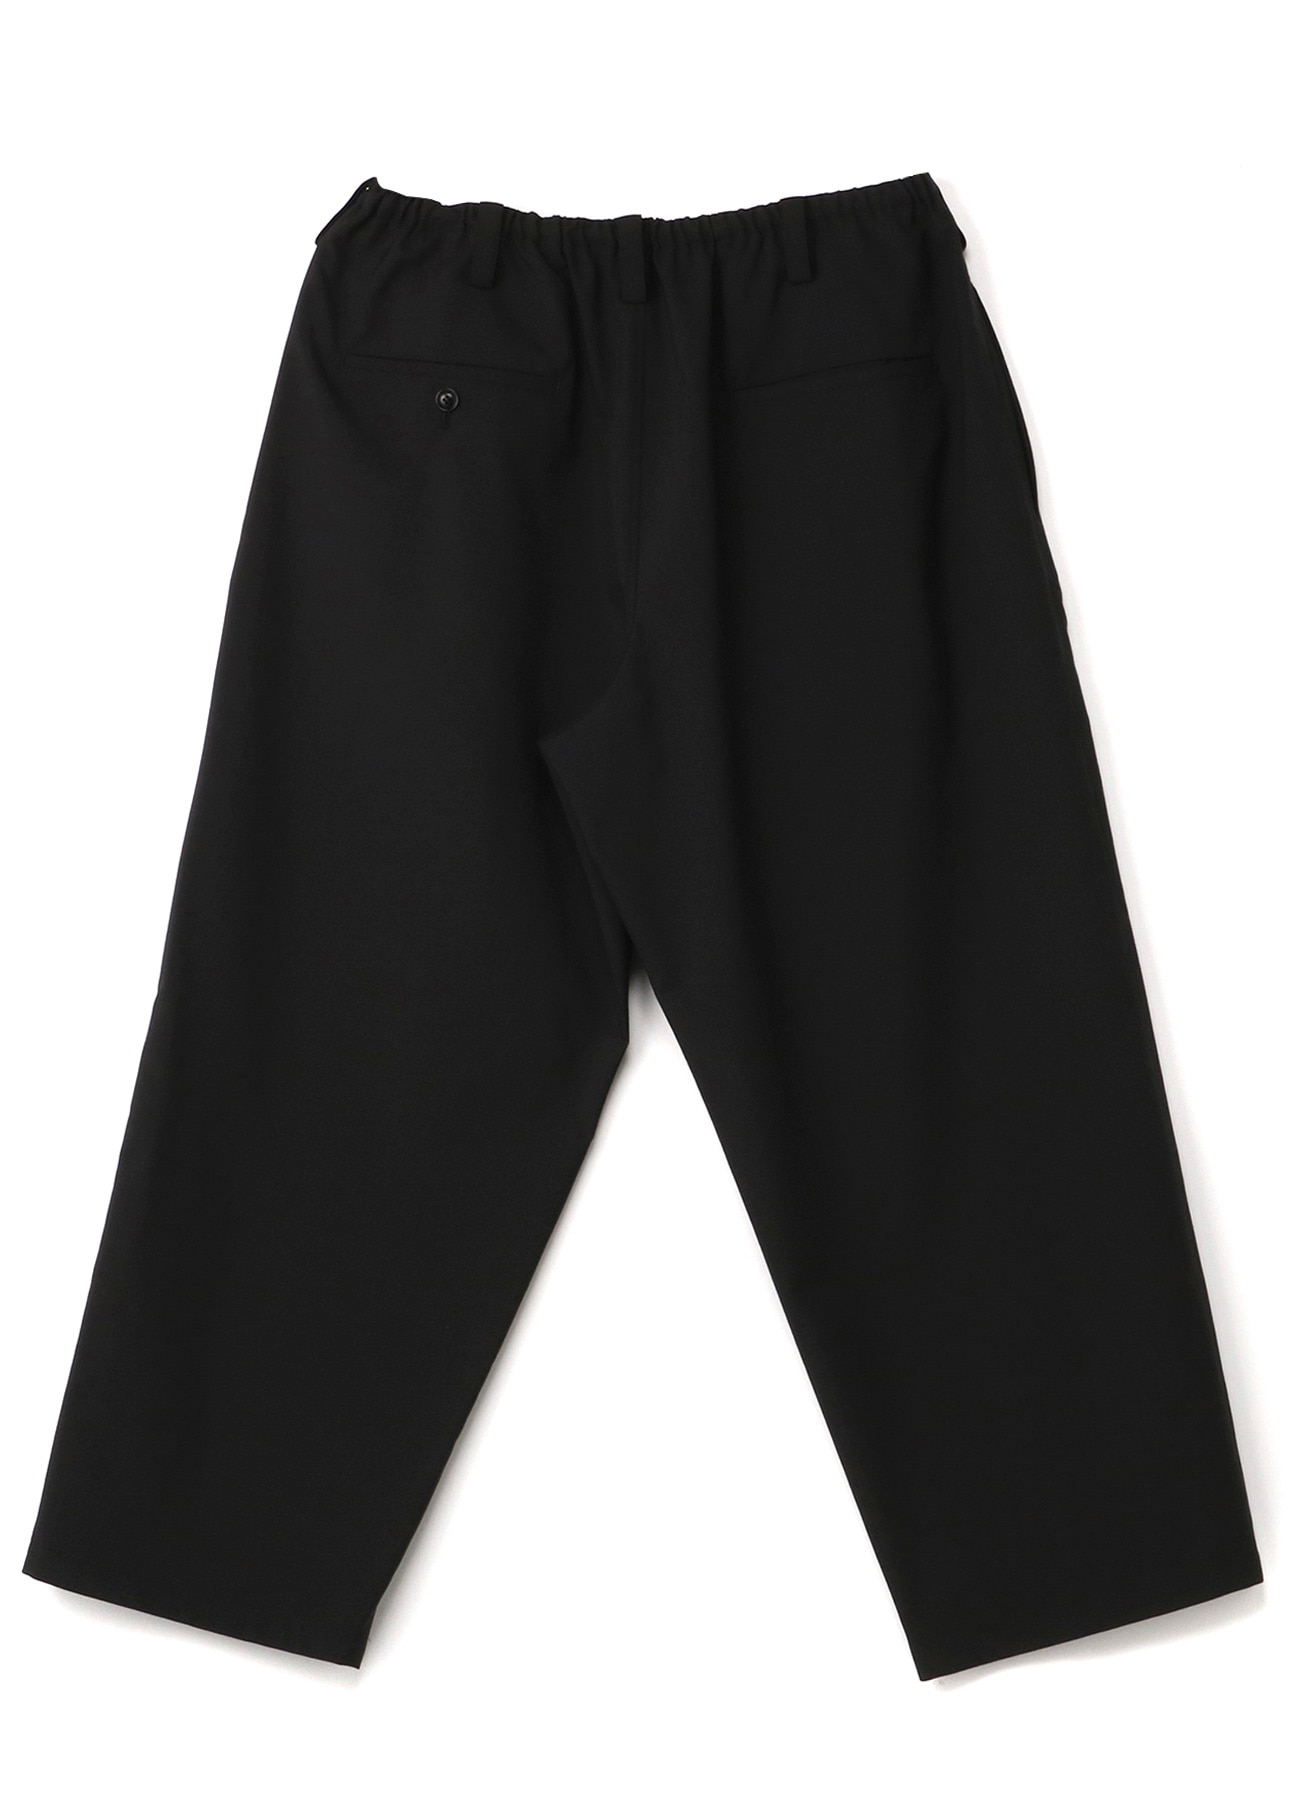 T/W Tropical West Cord Pants